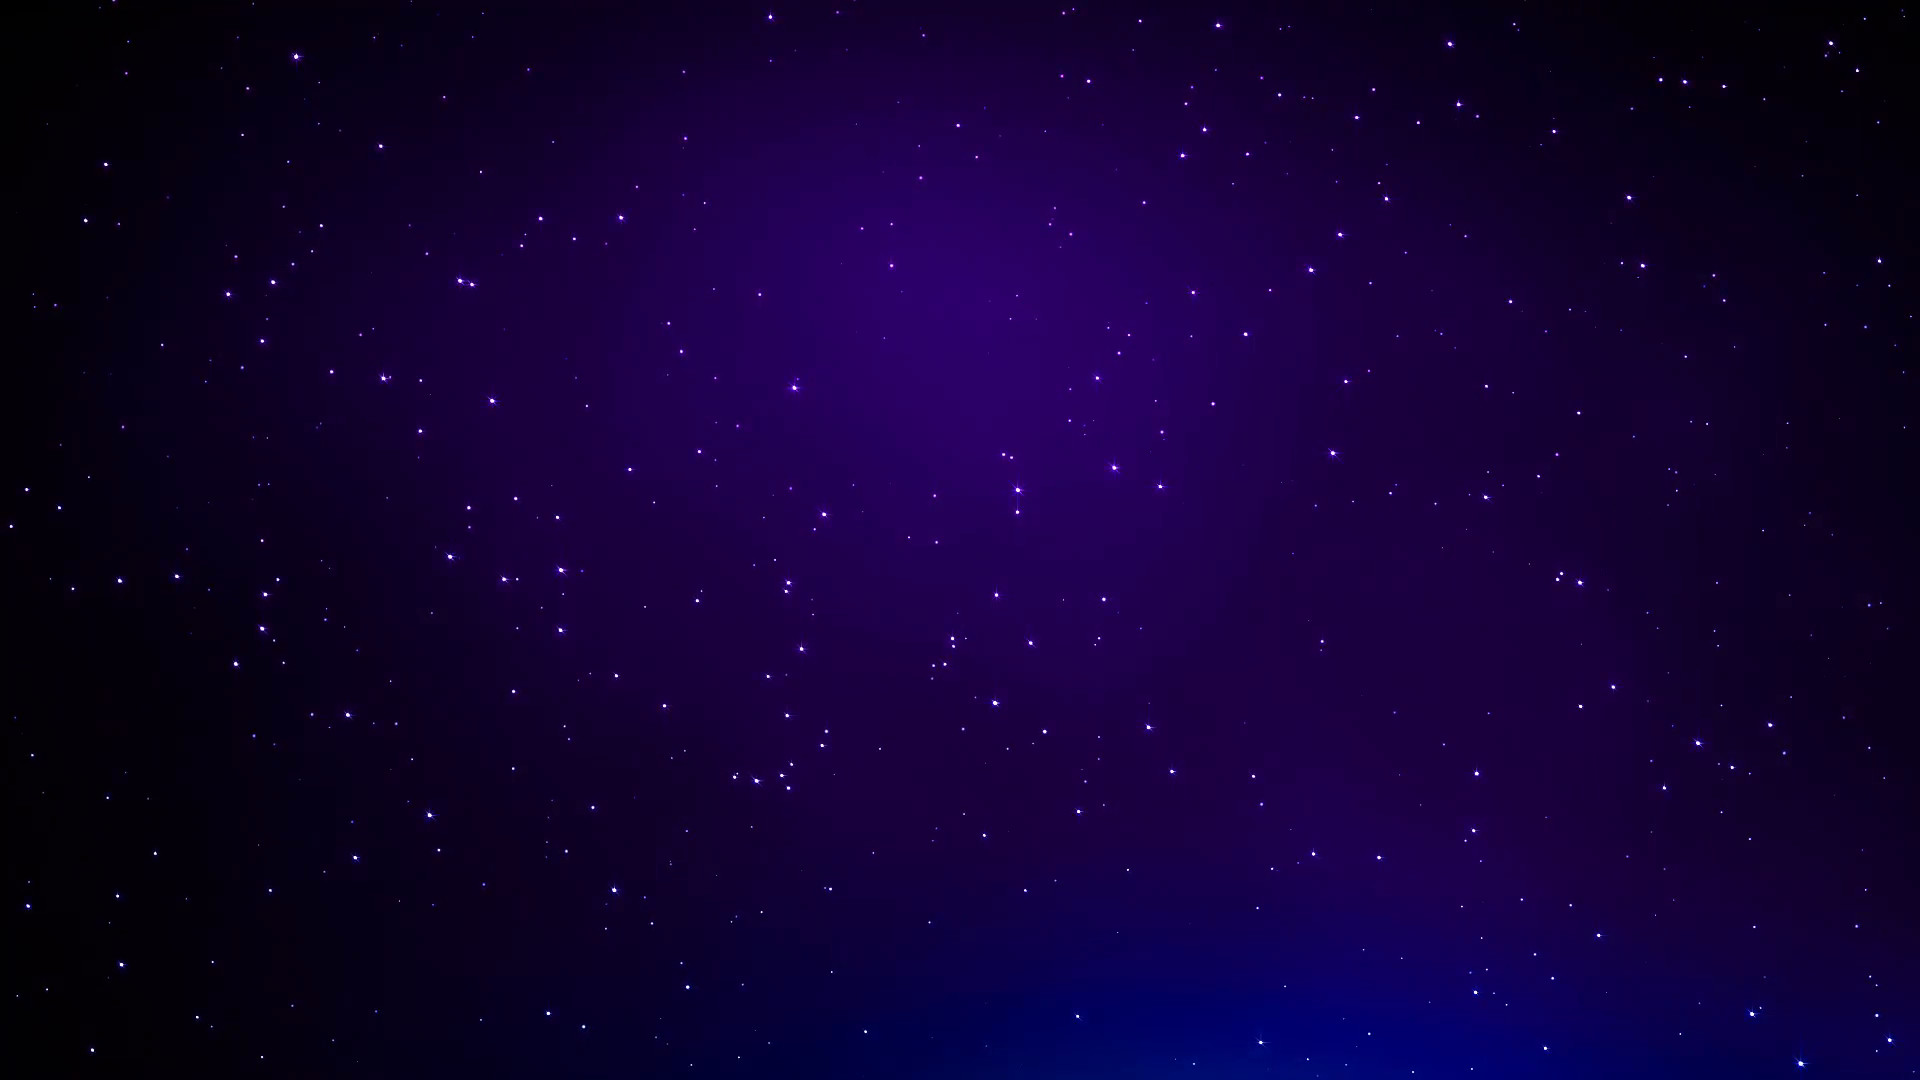 1920x1080 Spinning Purple and Blue Starry Sky in Space Motion Background - VideoBlocks